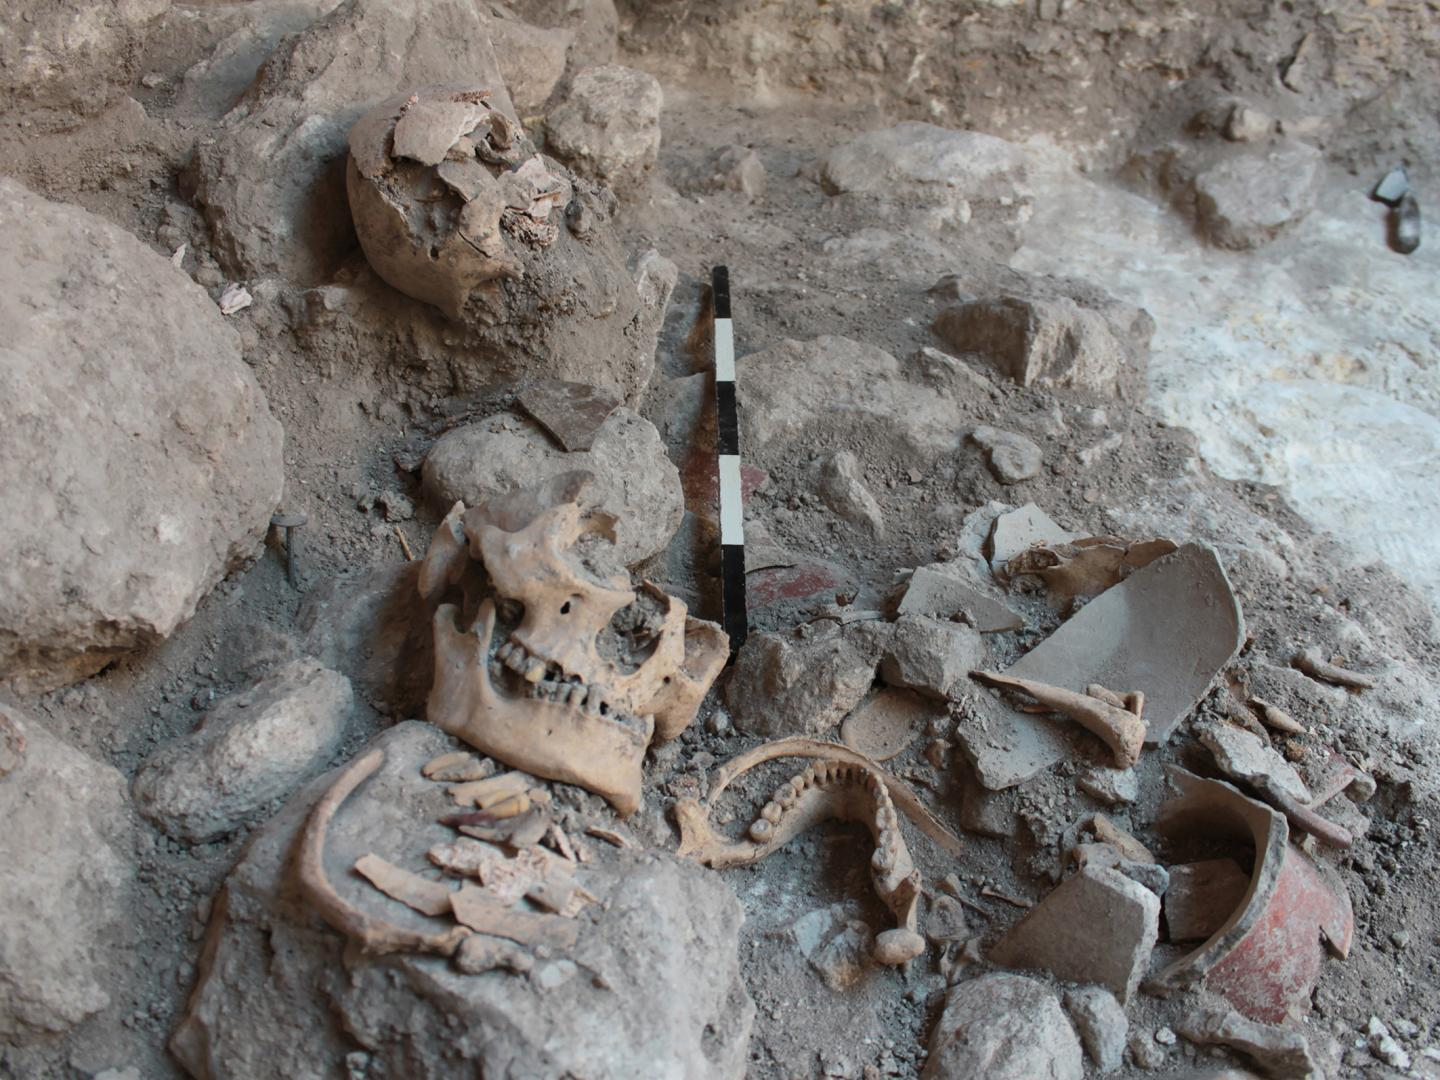 Mass Grave of Uxul during the Excavations in 2013